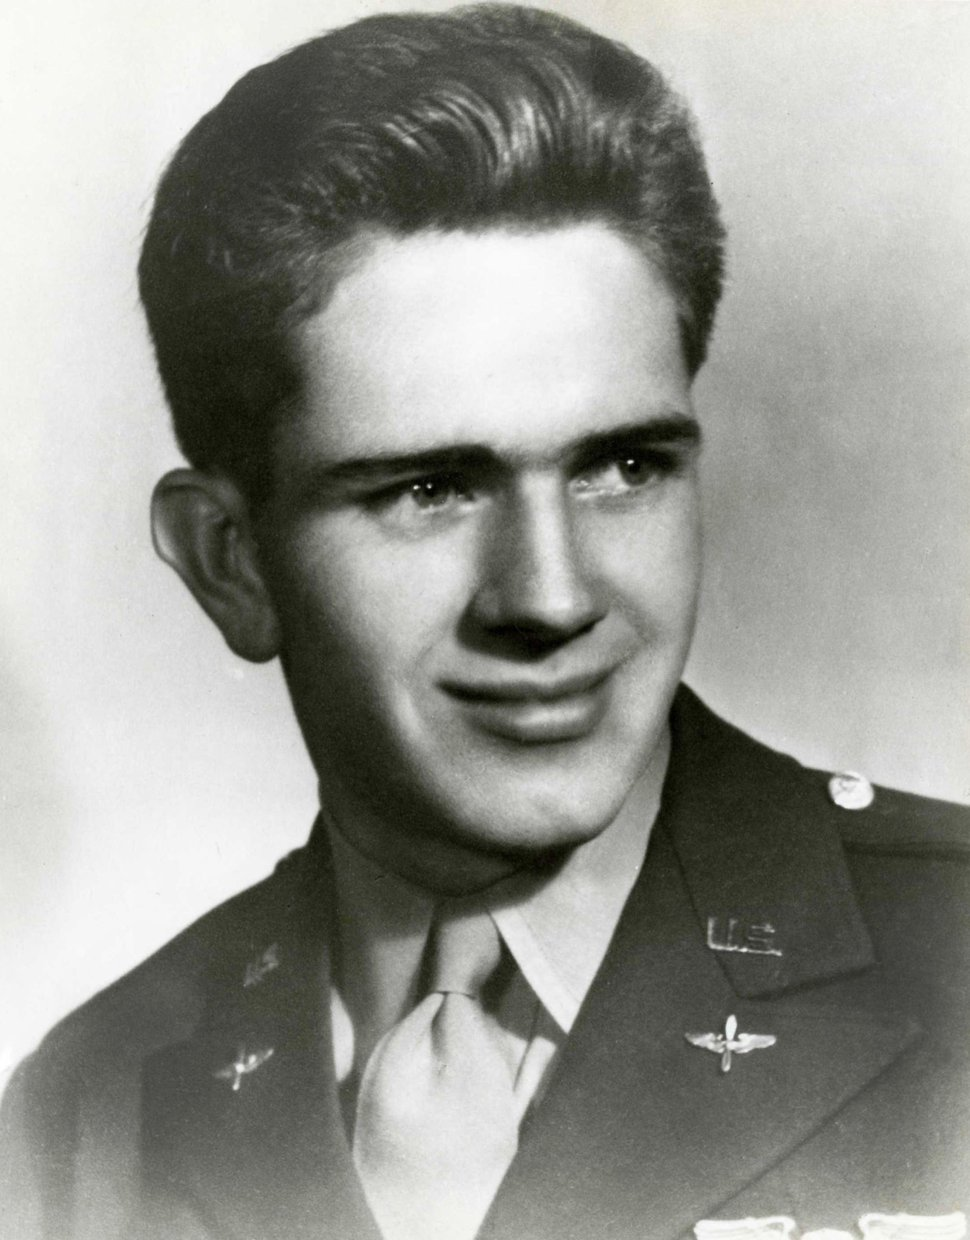 Courtesy | LDS Church Boyd K. Packer was a United States bomber pilot during World War II in the Pacific Theater. This photo was taken September 1944.